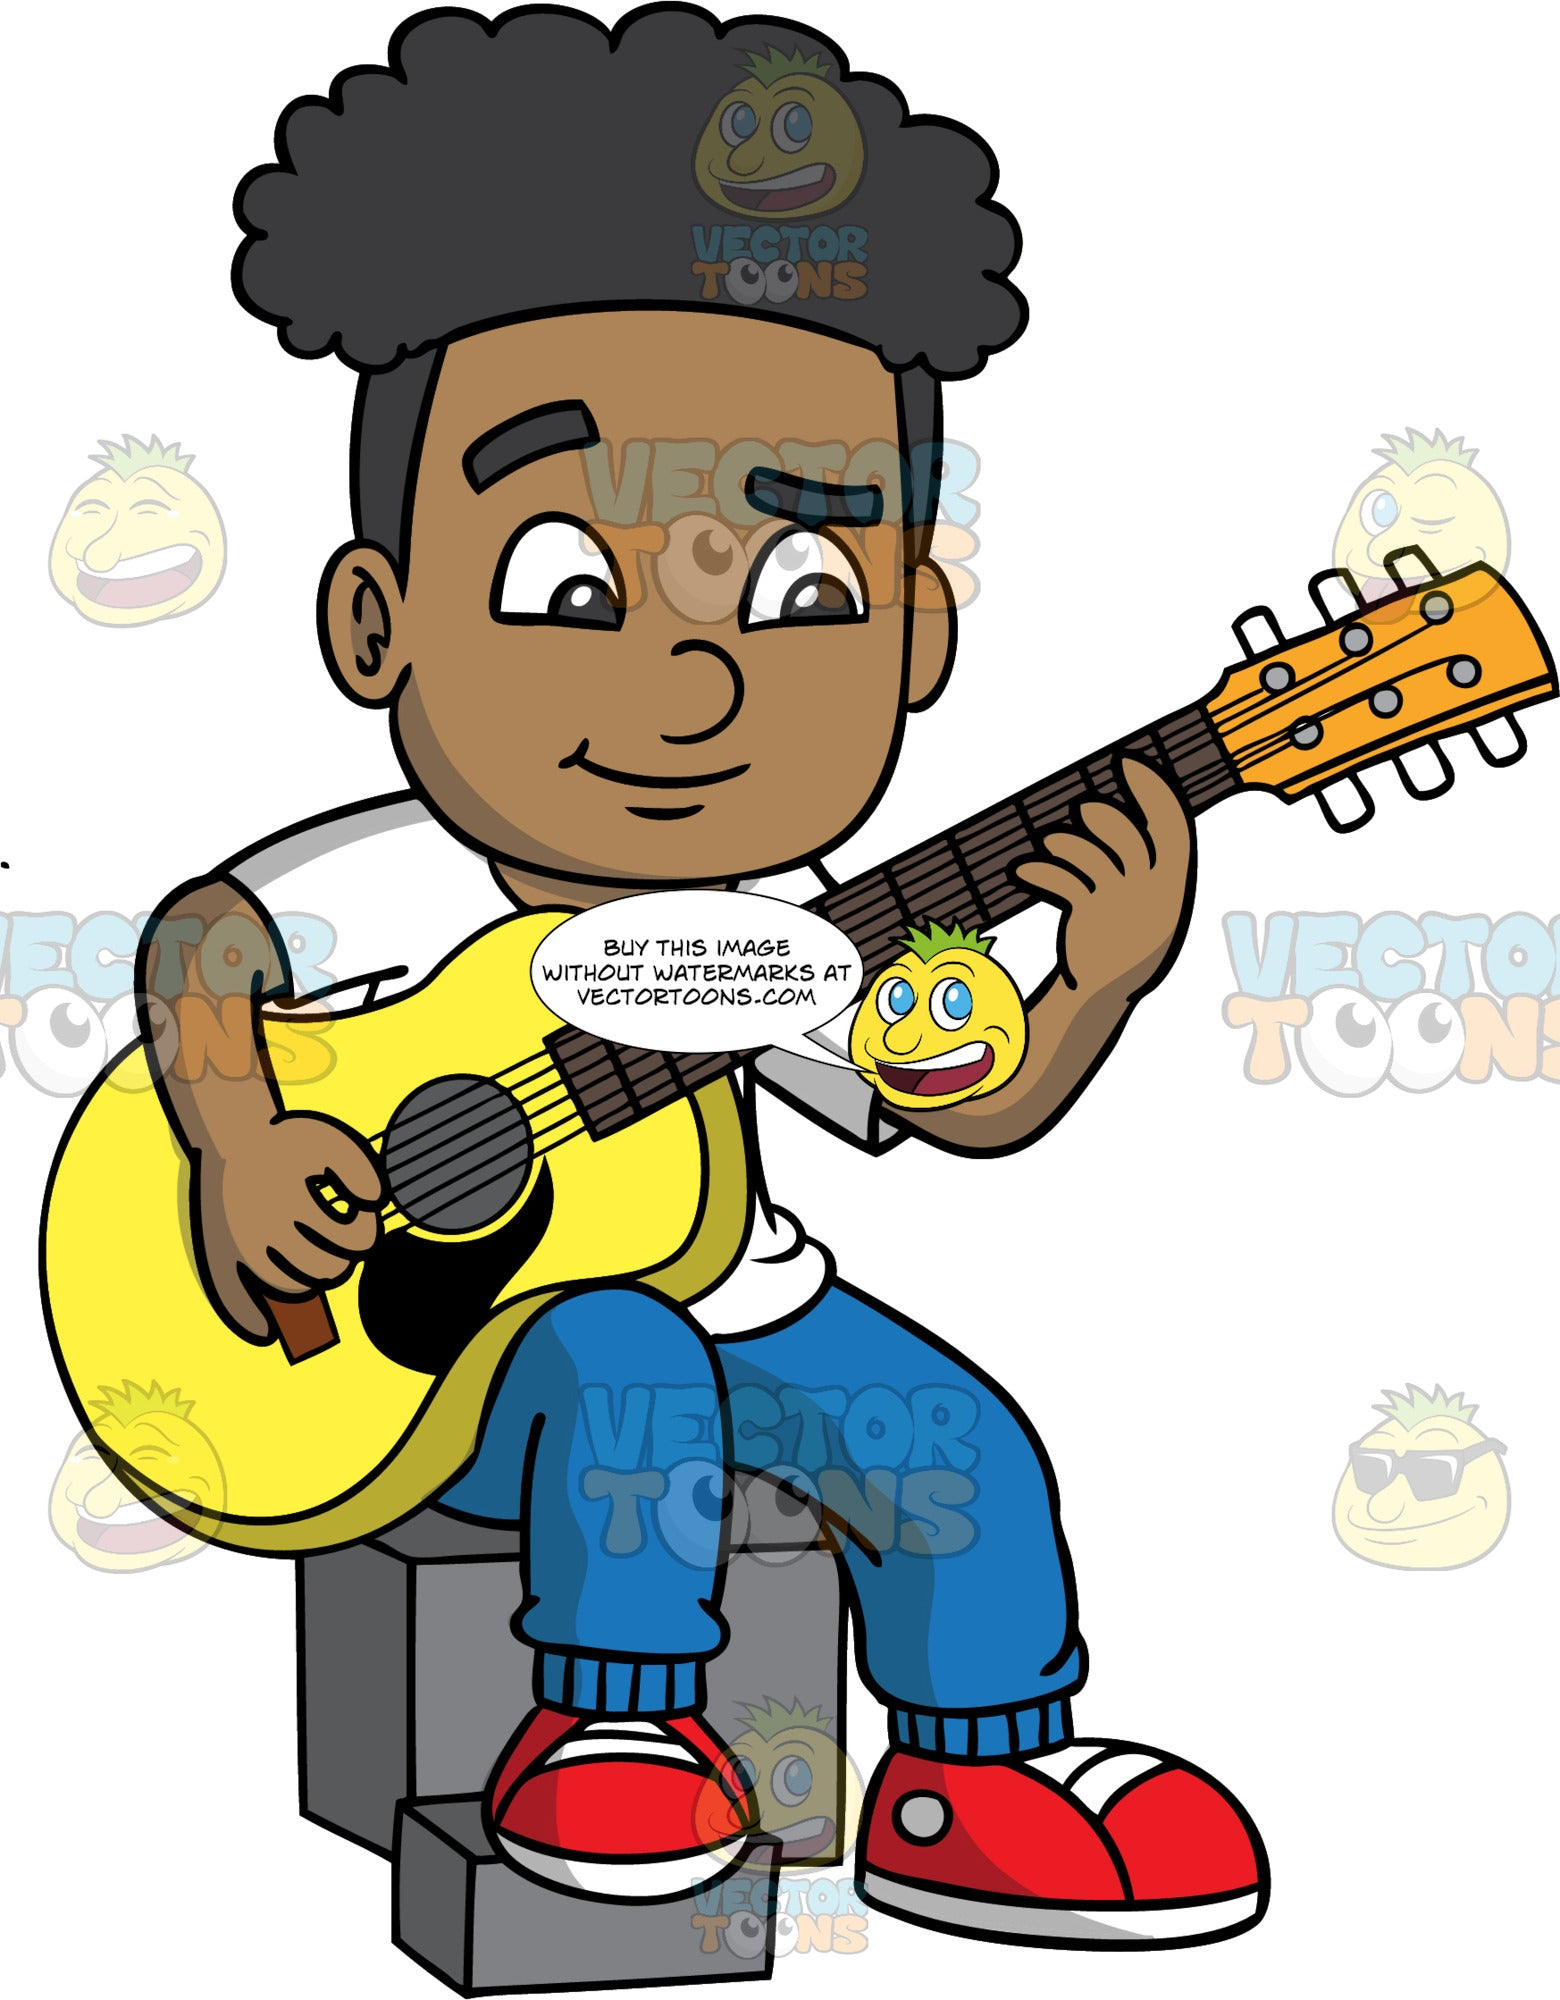 A Black Boy Learning How To Play Guitar. A black boy wearing blue pants, a white t-shirt, and red shoes, concentrates as he tries to learn how to play his yellow acoustic guitar